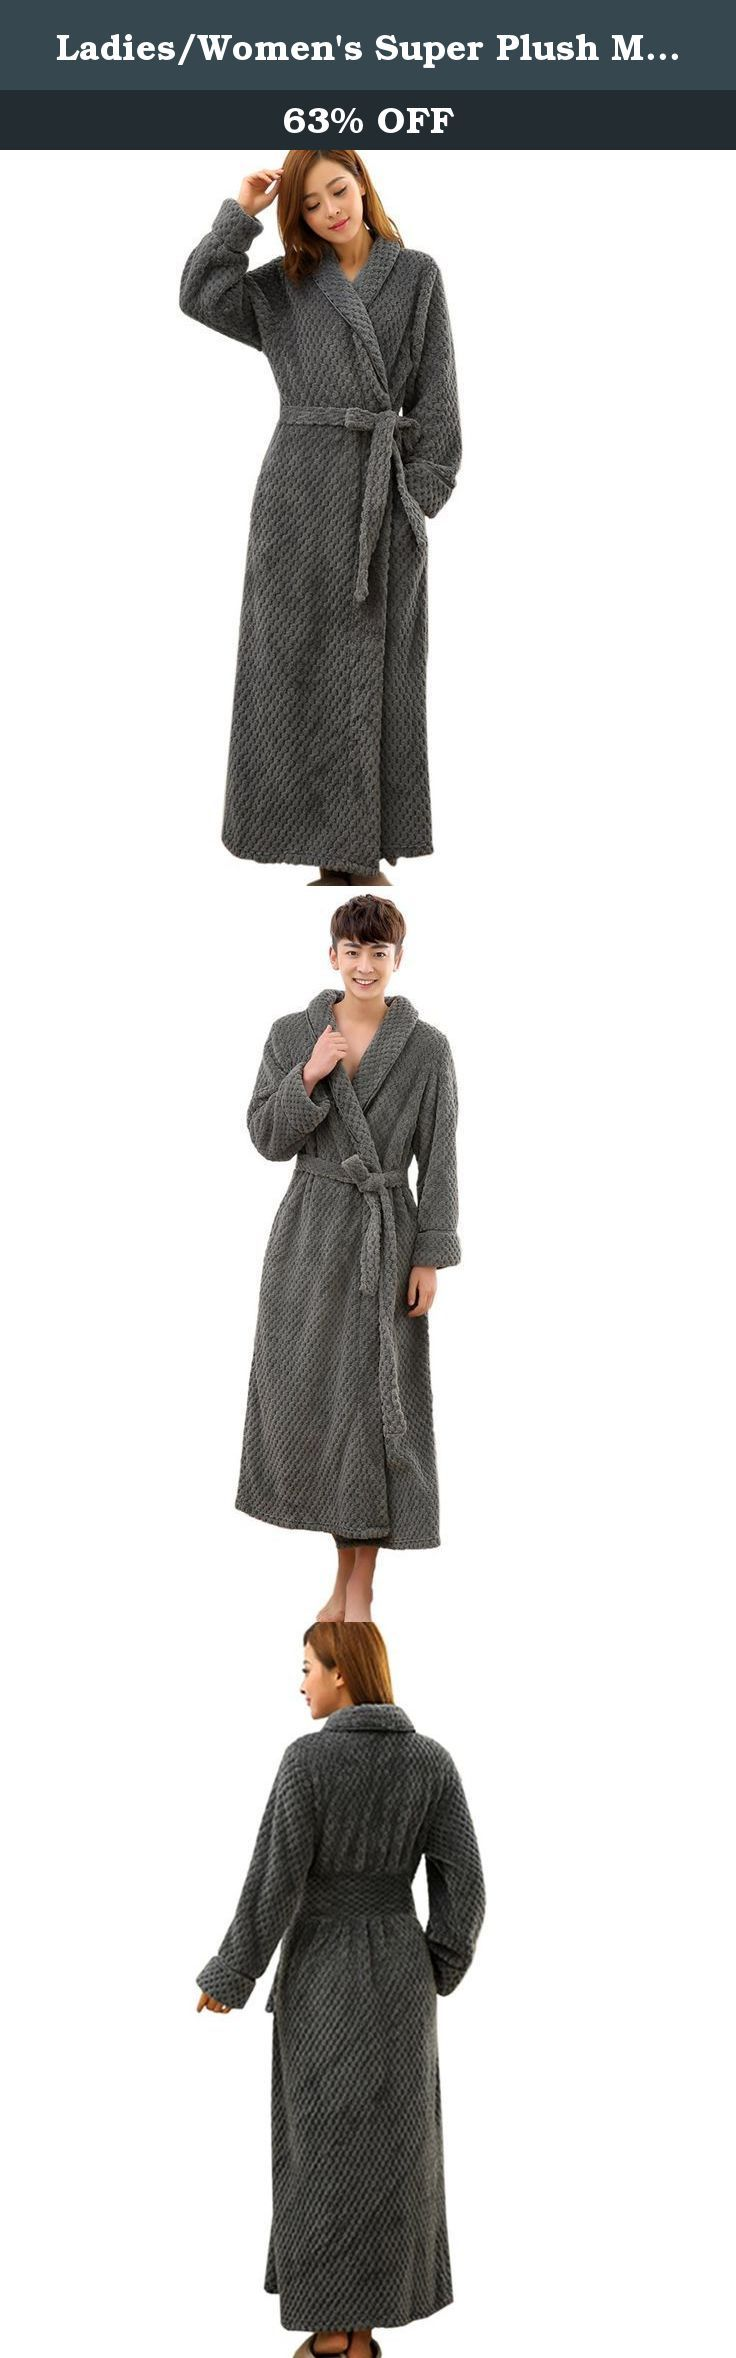 Ladies/Women's Super Plush Microfiber Fleece Bathrobe Robe US size S/L. If you have any questions,please feel free to contact us ,please consider whether you could accept the vary color due to the lighting. If you like it, please share your feelings with us by leaving reviews below.Thanks!.